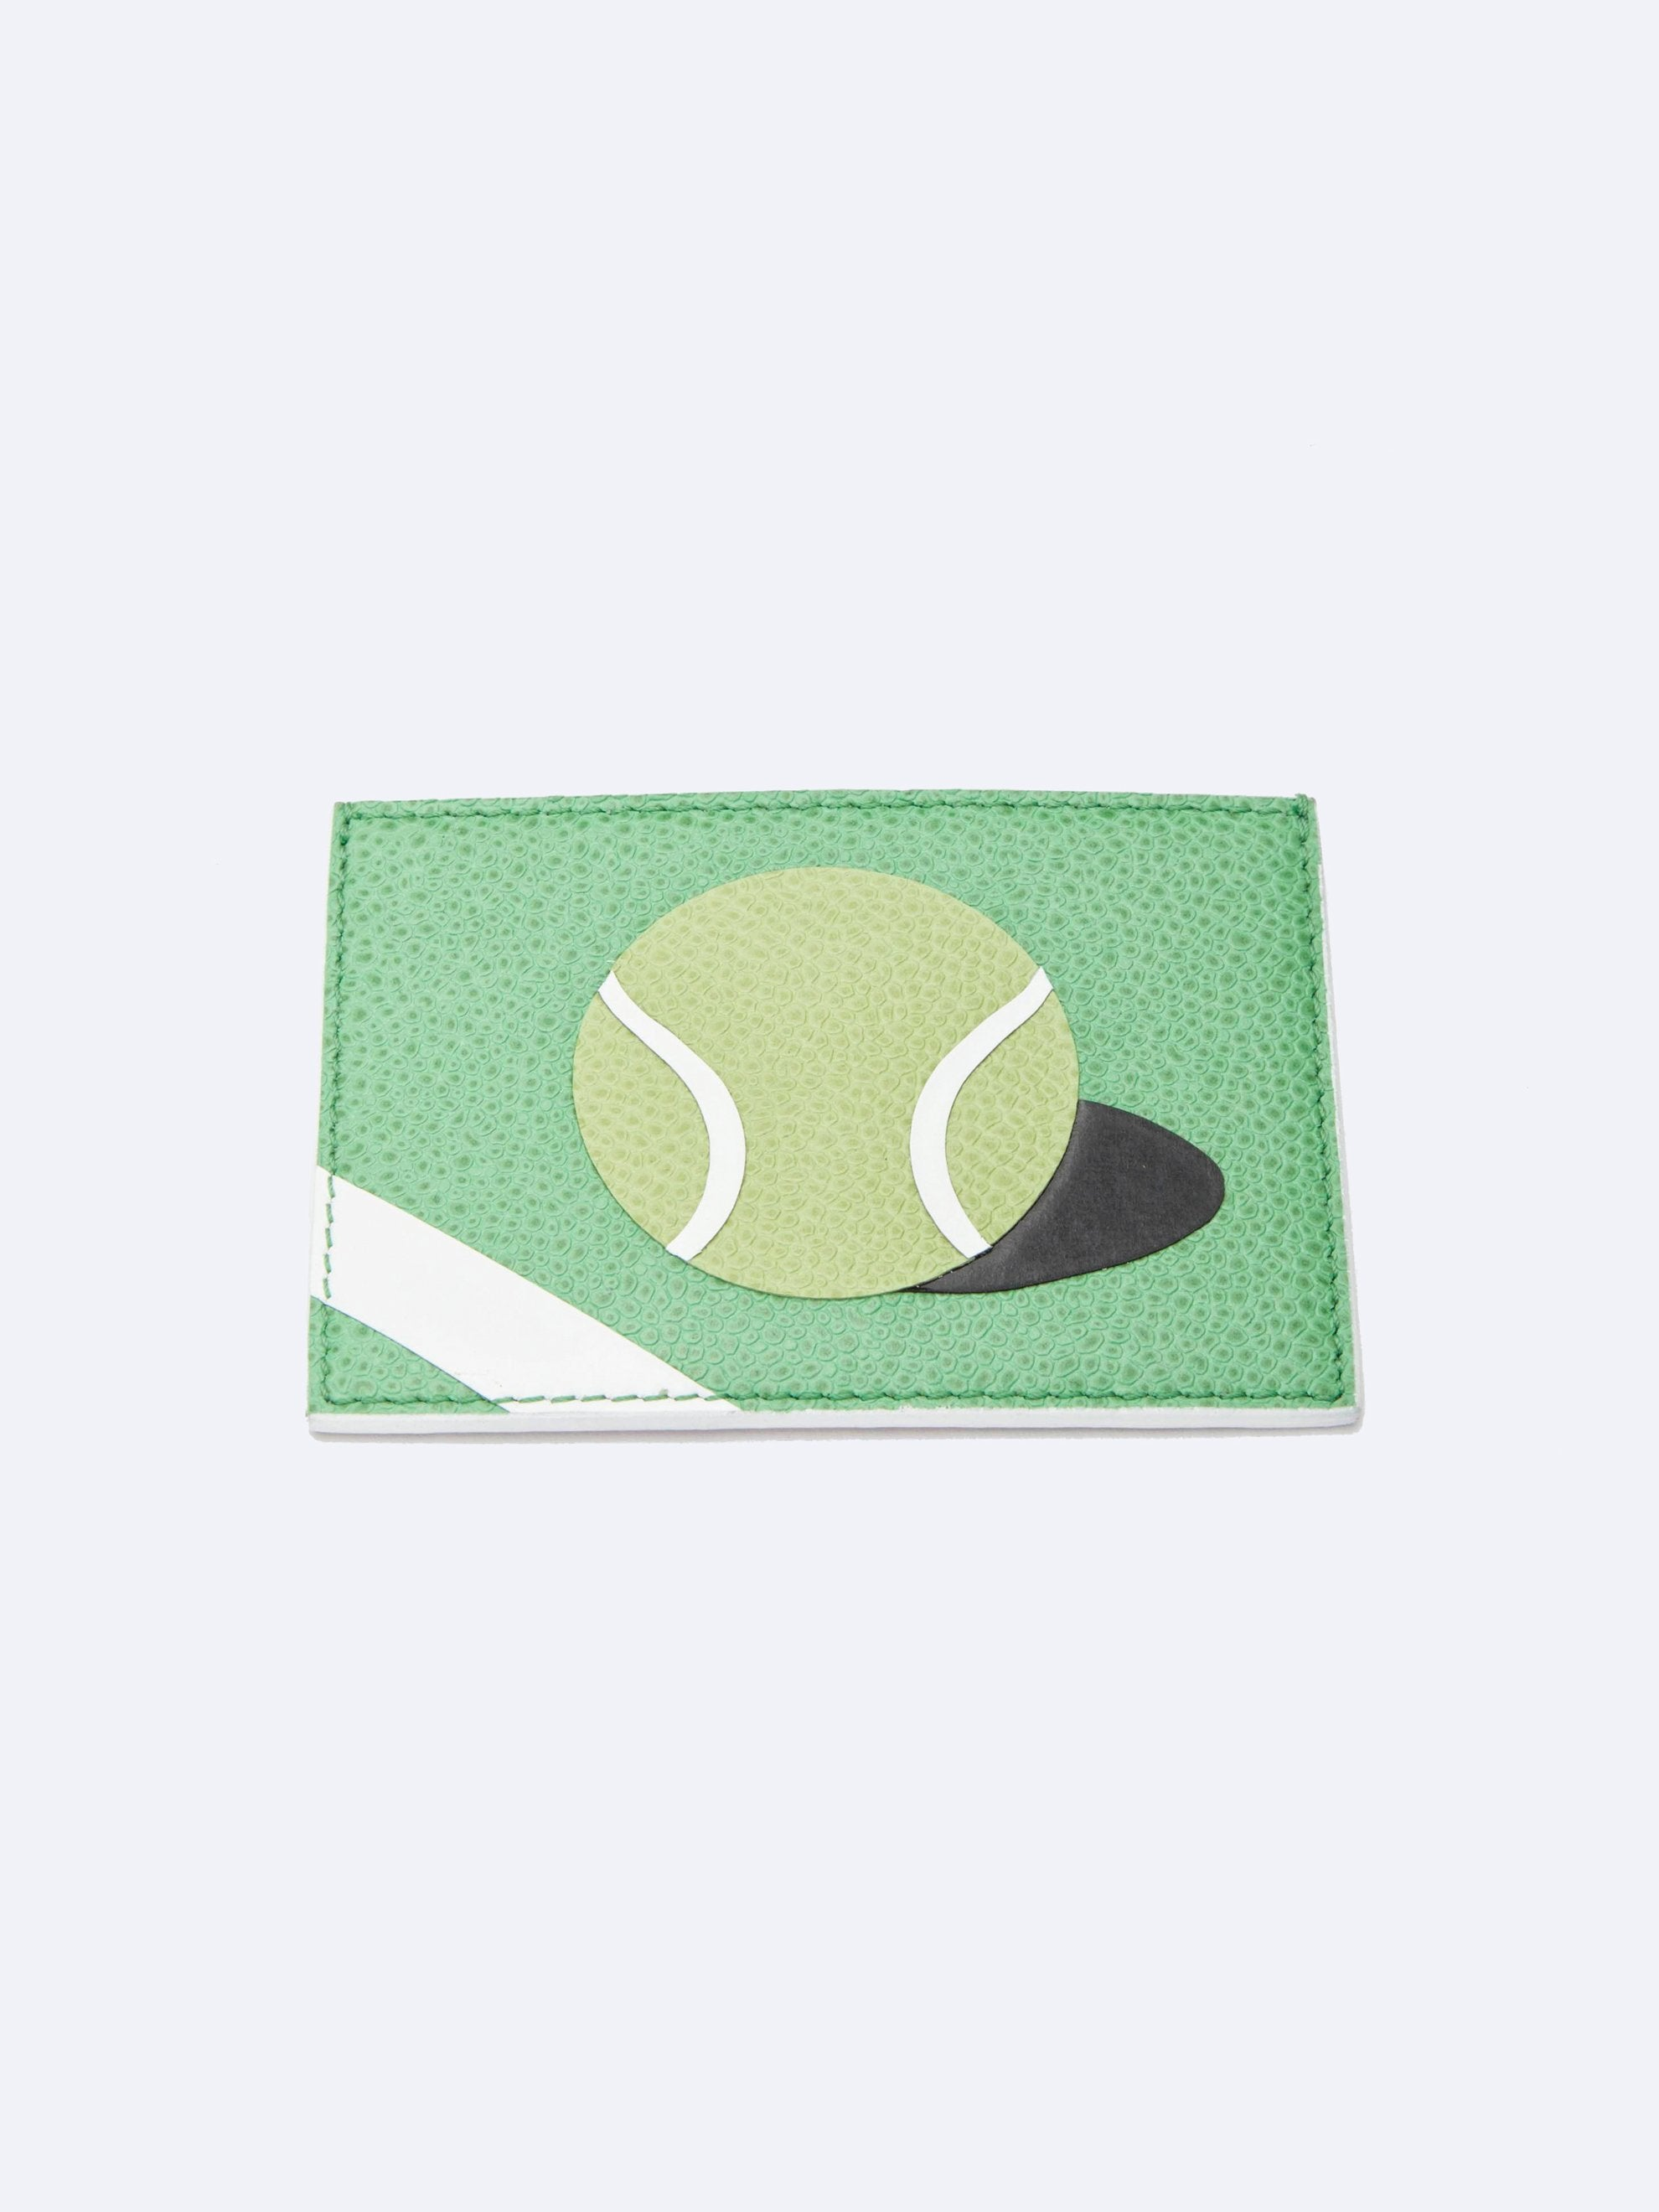 Med. Green Single Card Holder (Tennis Ball/Pebble Grain + Calf Leather) 1